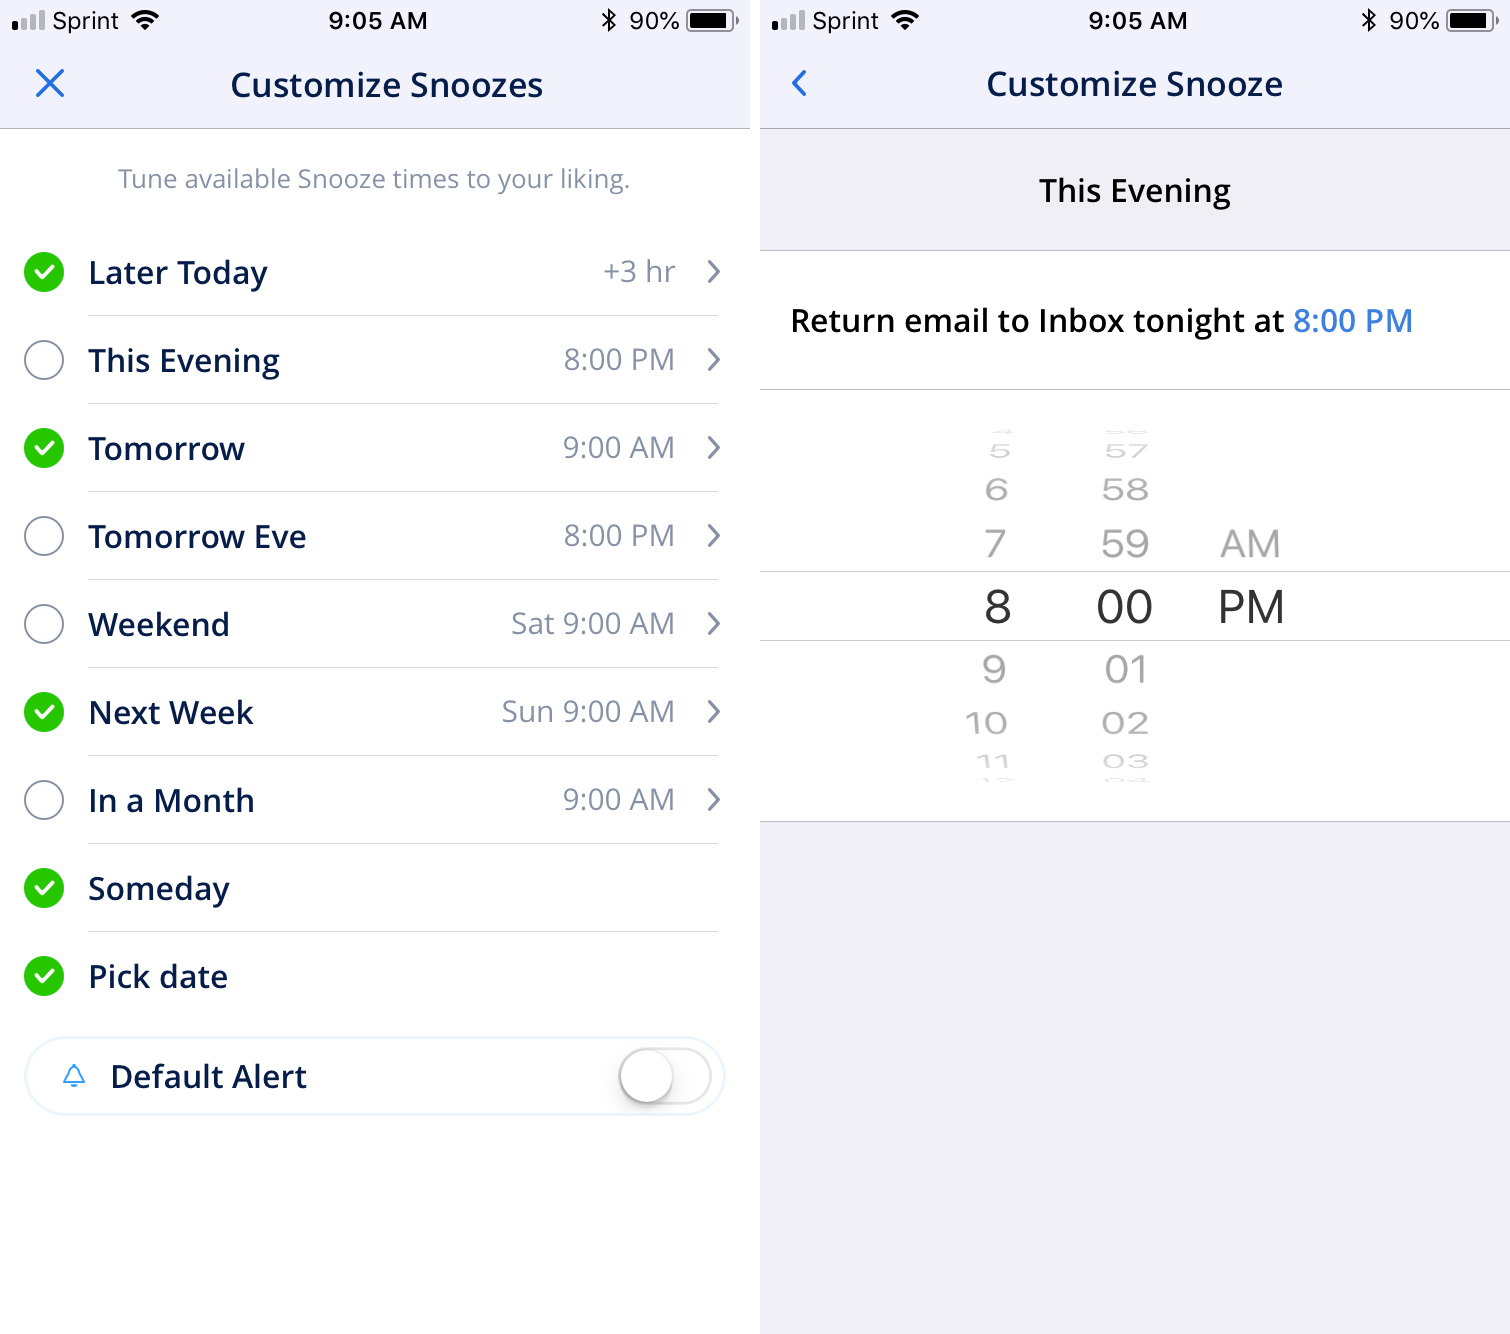 Spark email features - customize snoozes